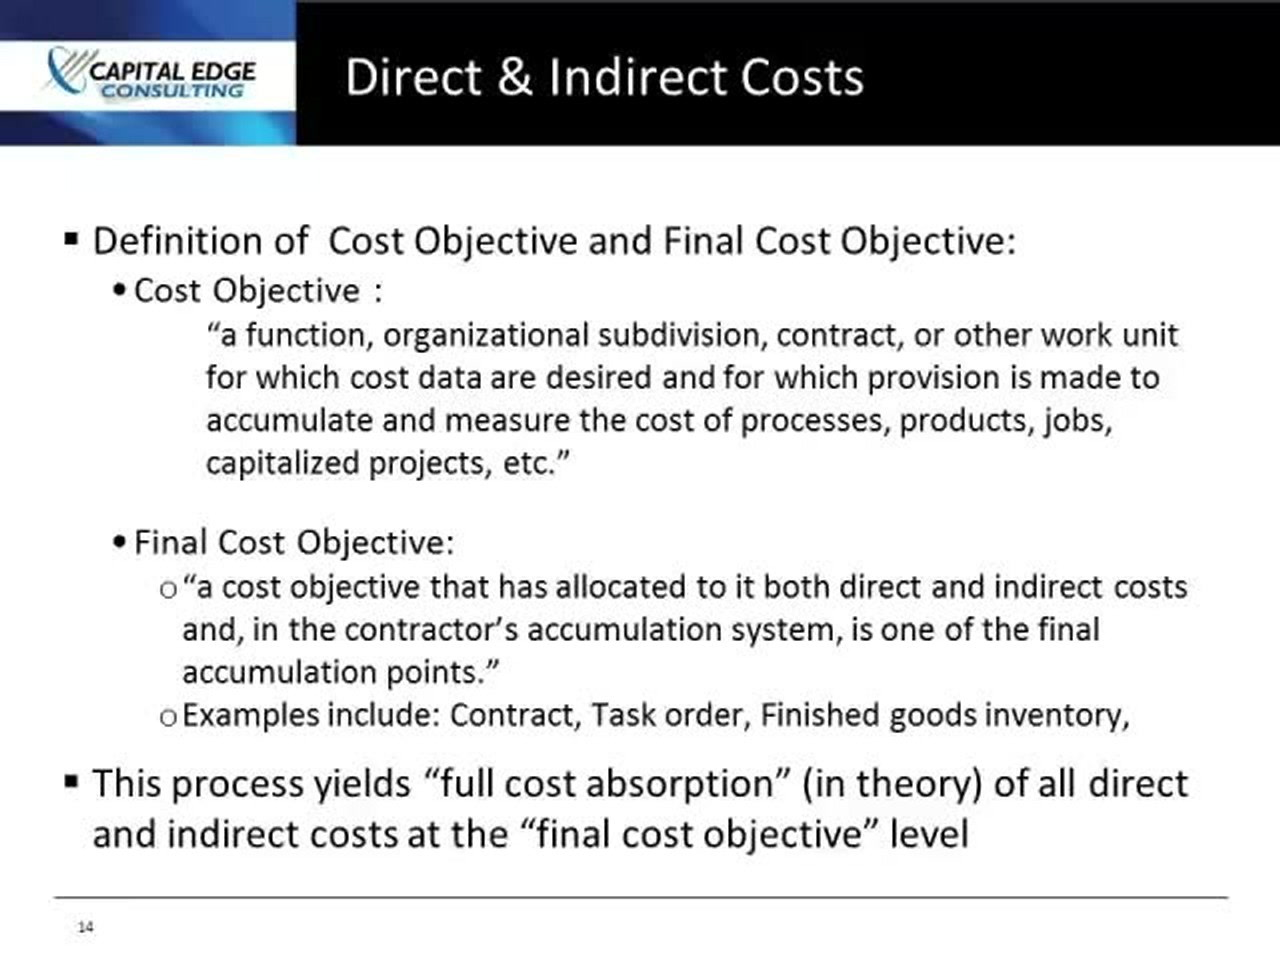 Direct Indirect Costs Video Lorman Education Services